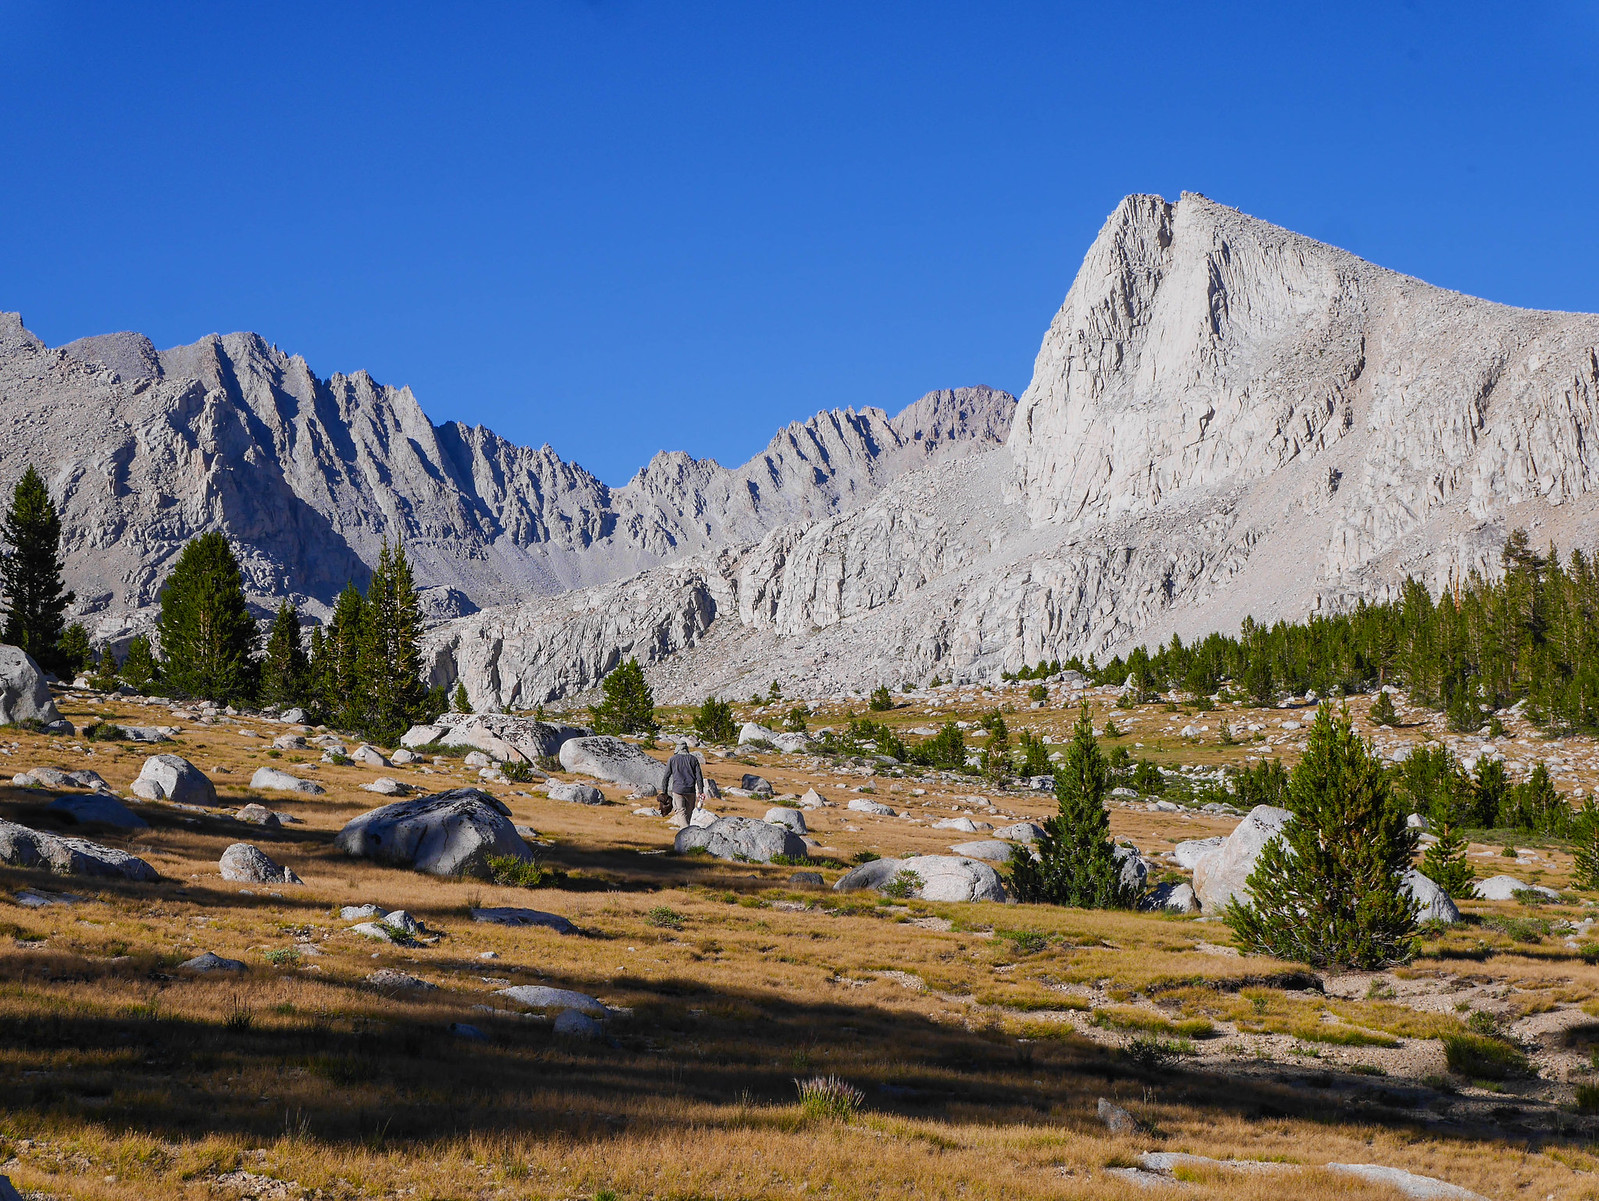 The east end of the Bighorn Plateau below Tyndall and the Wrights Lakes Basin